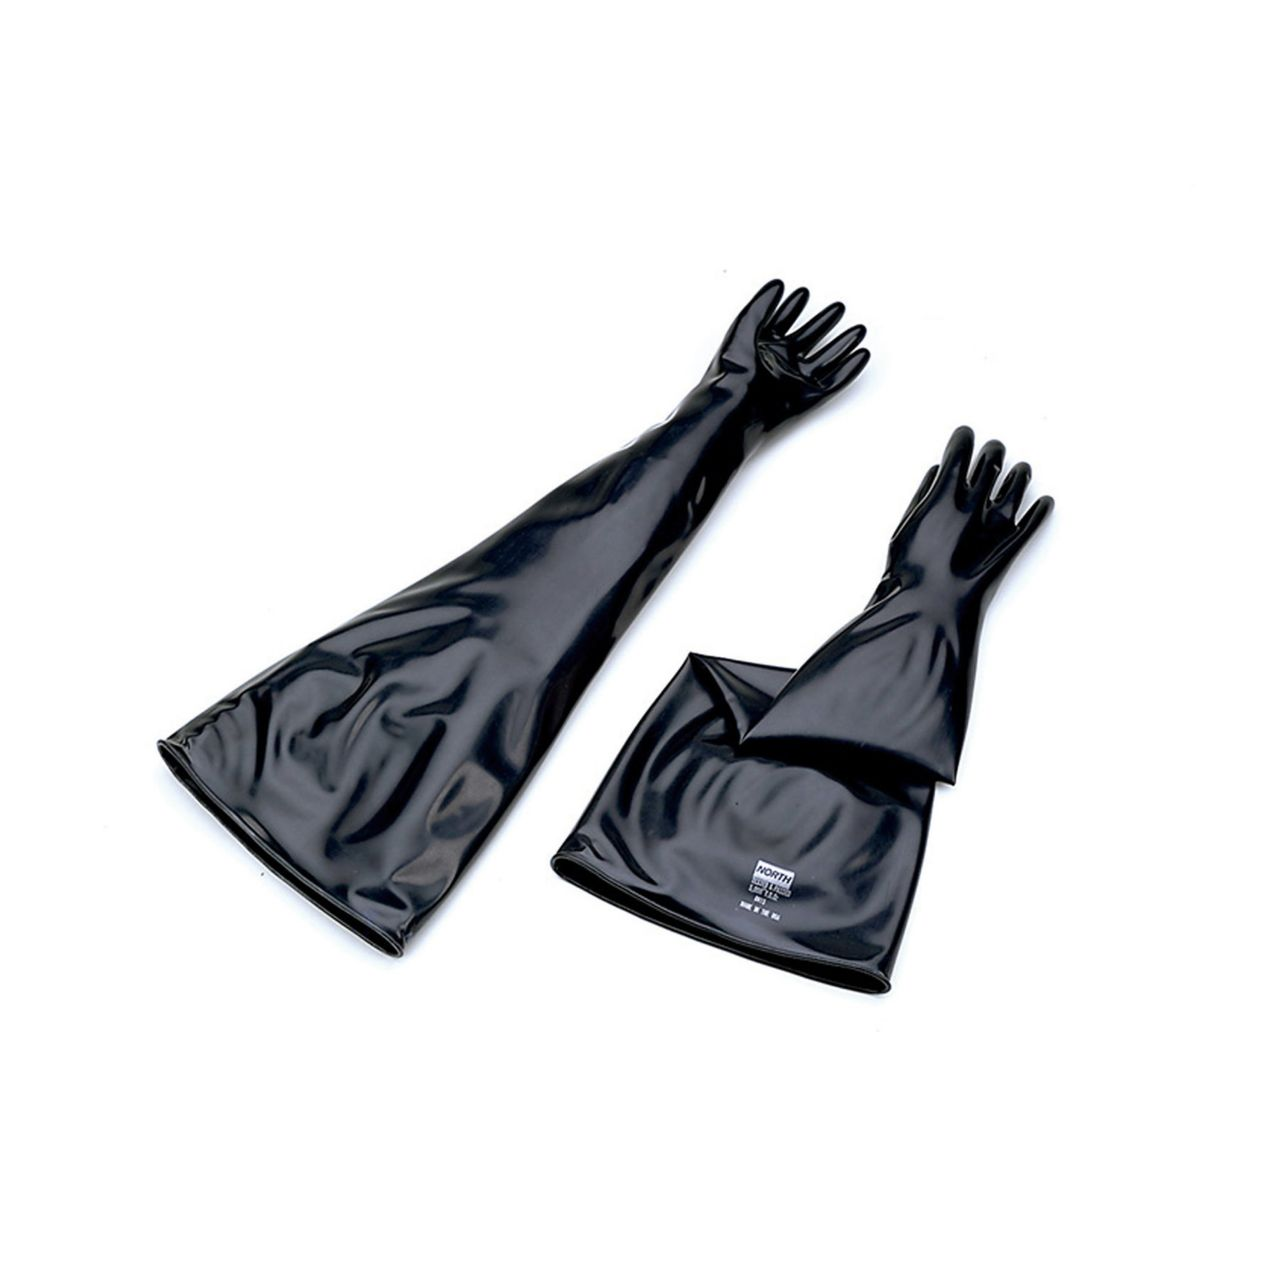 HS_butyl_glovebox_gloves_5b1532 5b1532a 8b3032 8b3032a 7b3032 7b3032a 5b3032 5b3032a north butyle